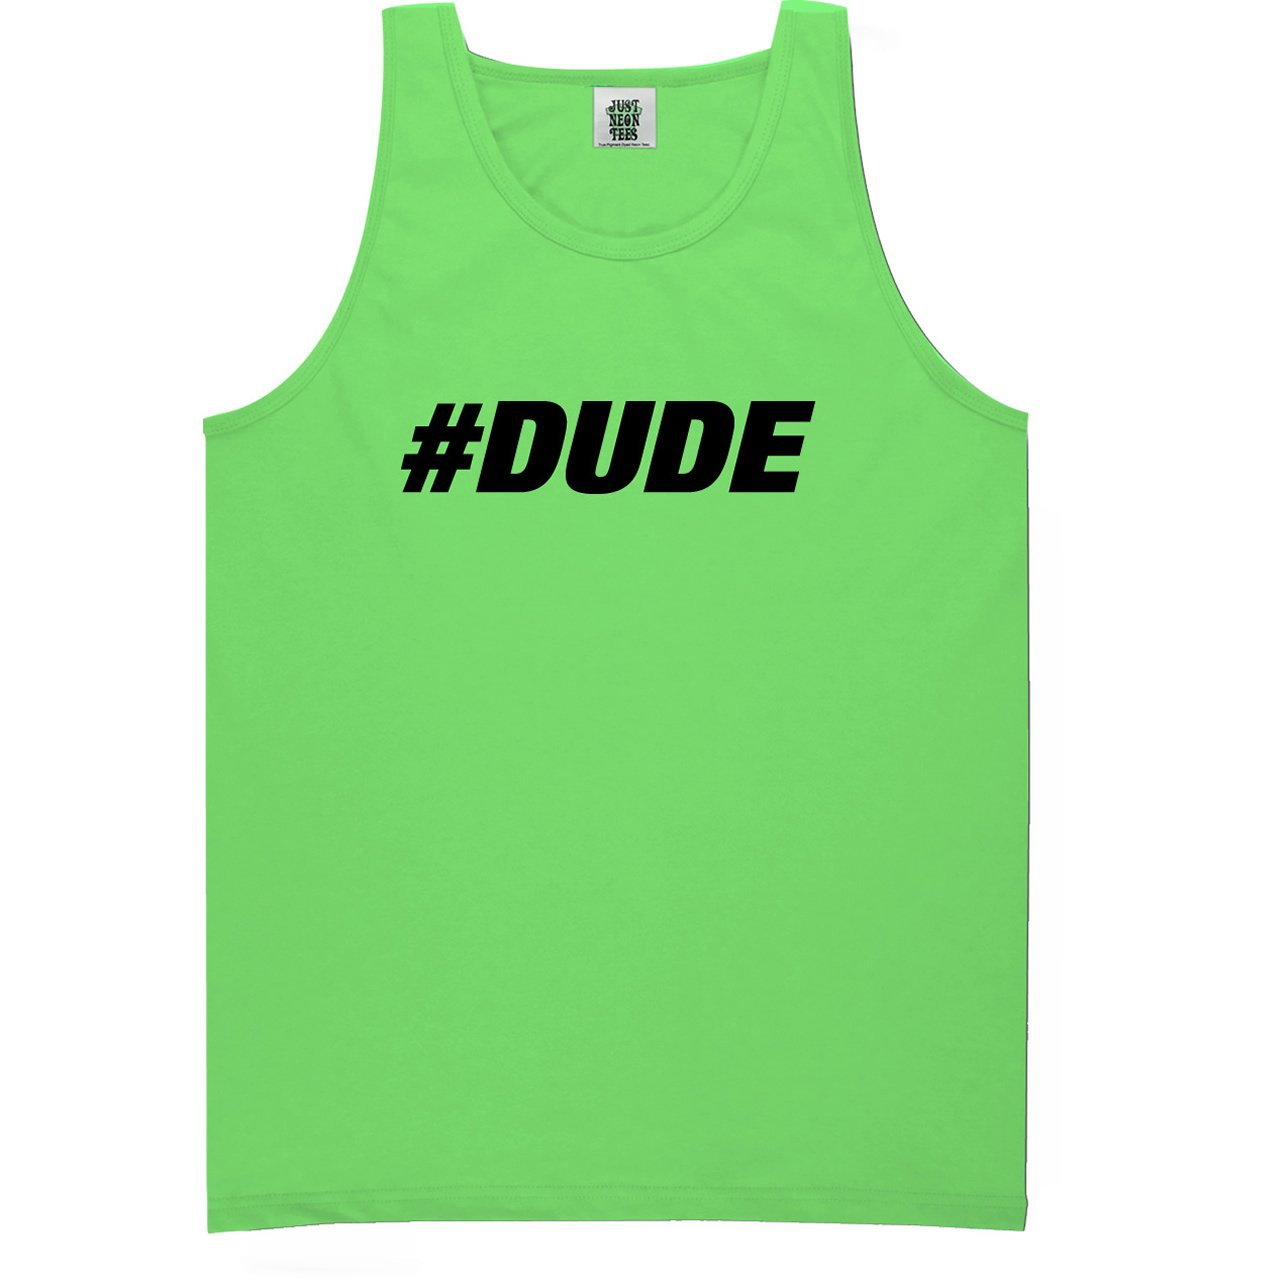 #DUDE Bright Neon Tank Top - 6 bright colors PA-NEON-546-TK